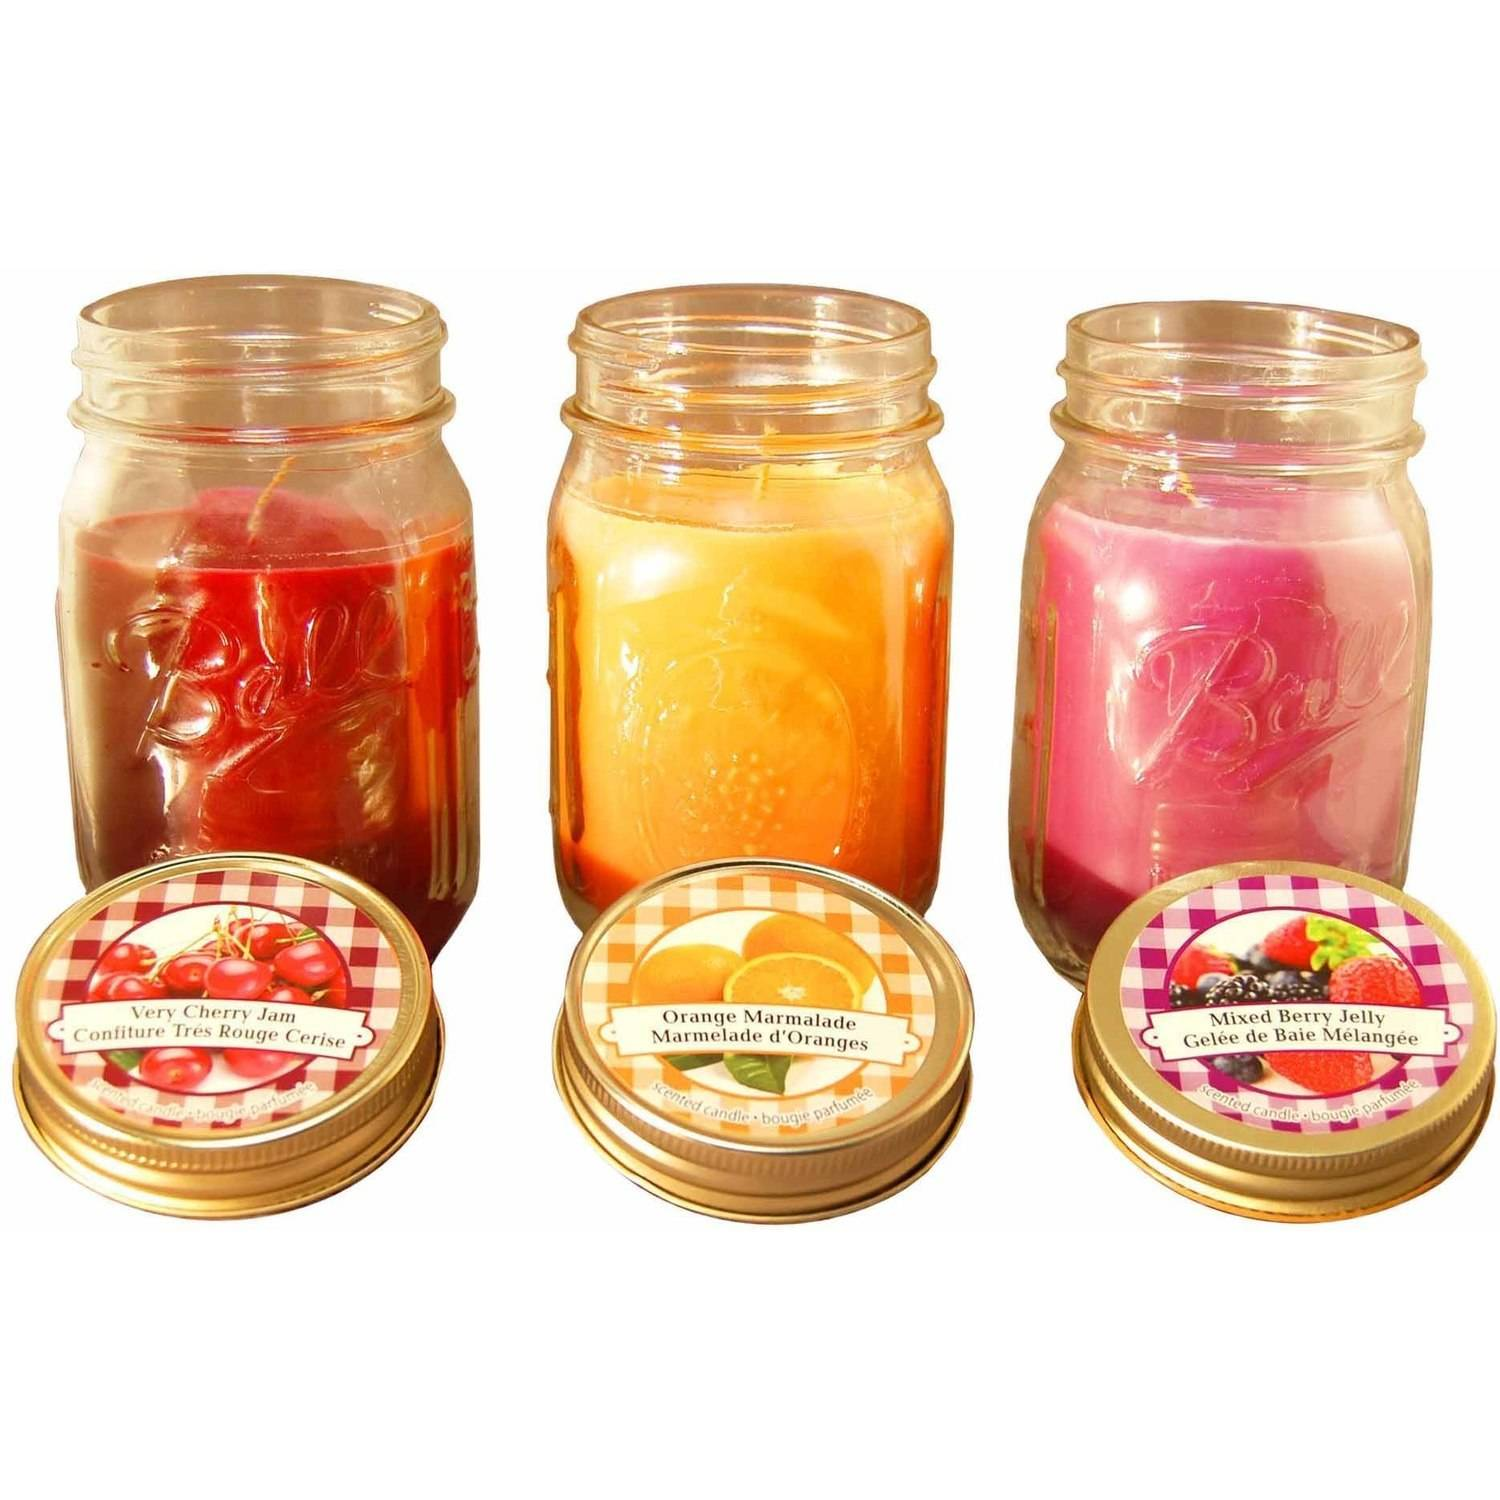 LumaBase Scented Candles, Jams and Jelly, 12 oz, Set of 3